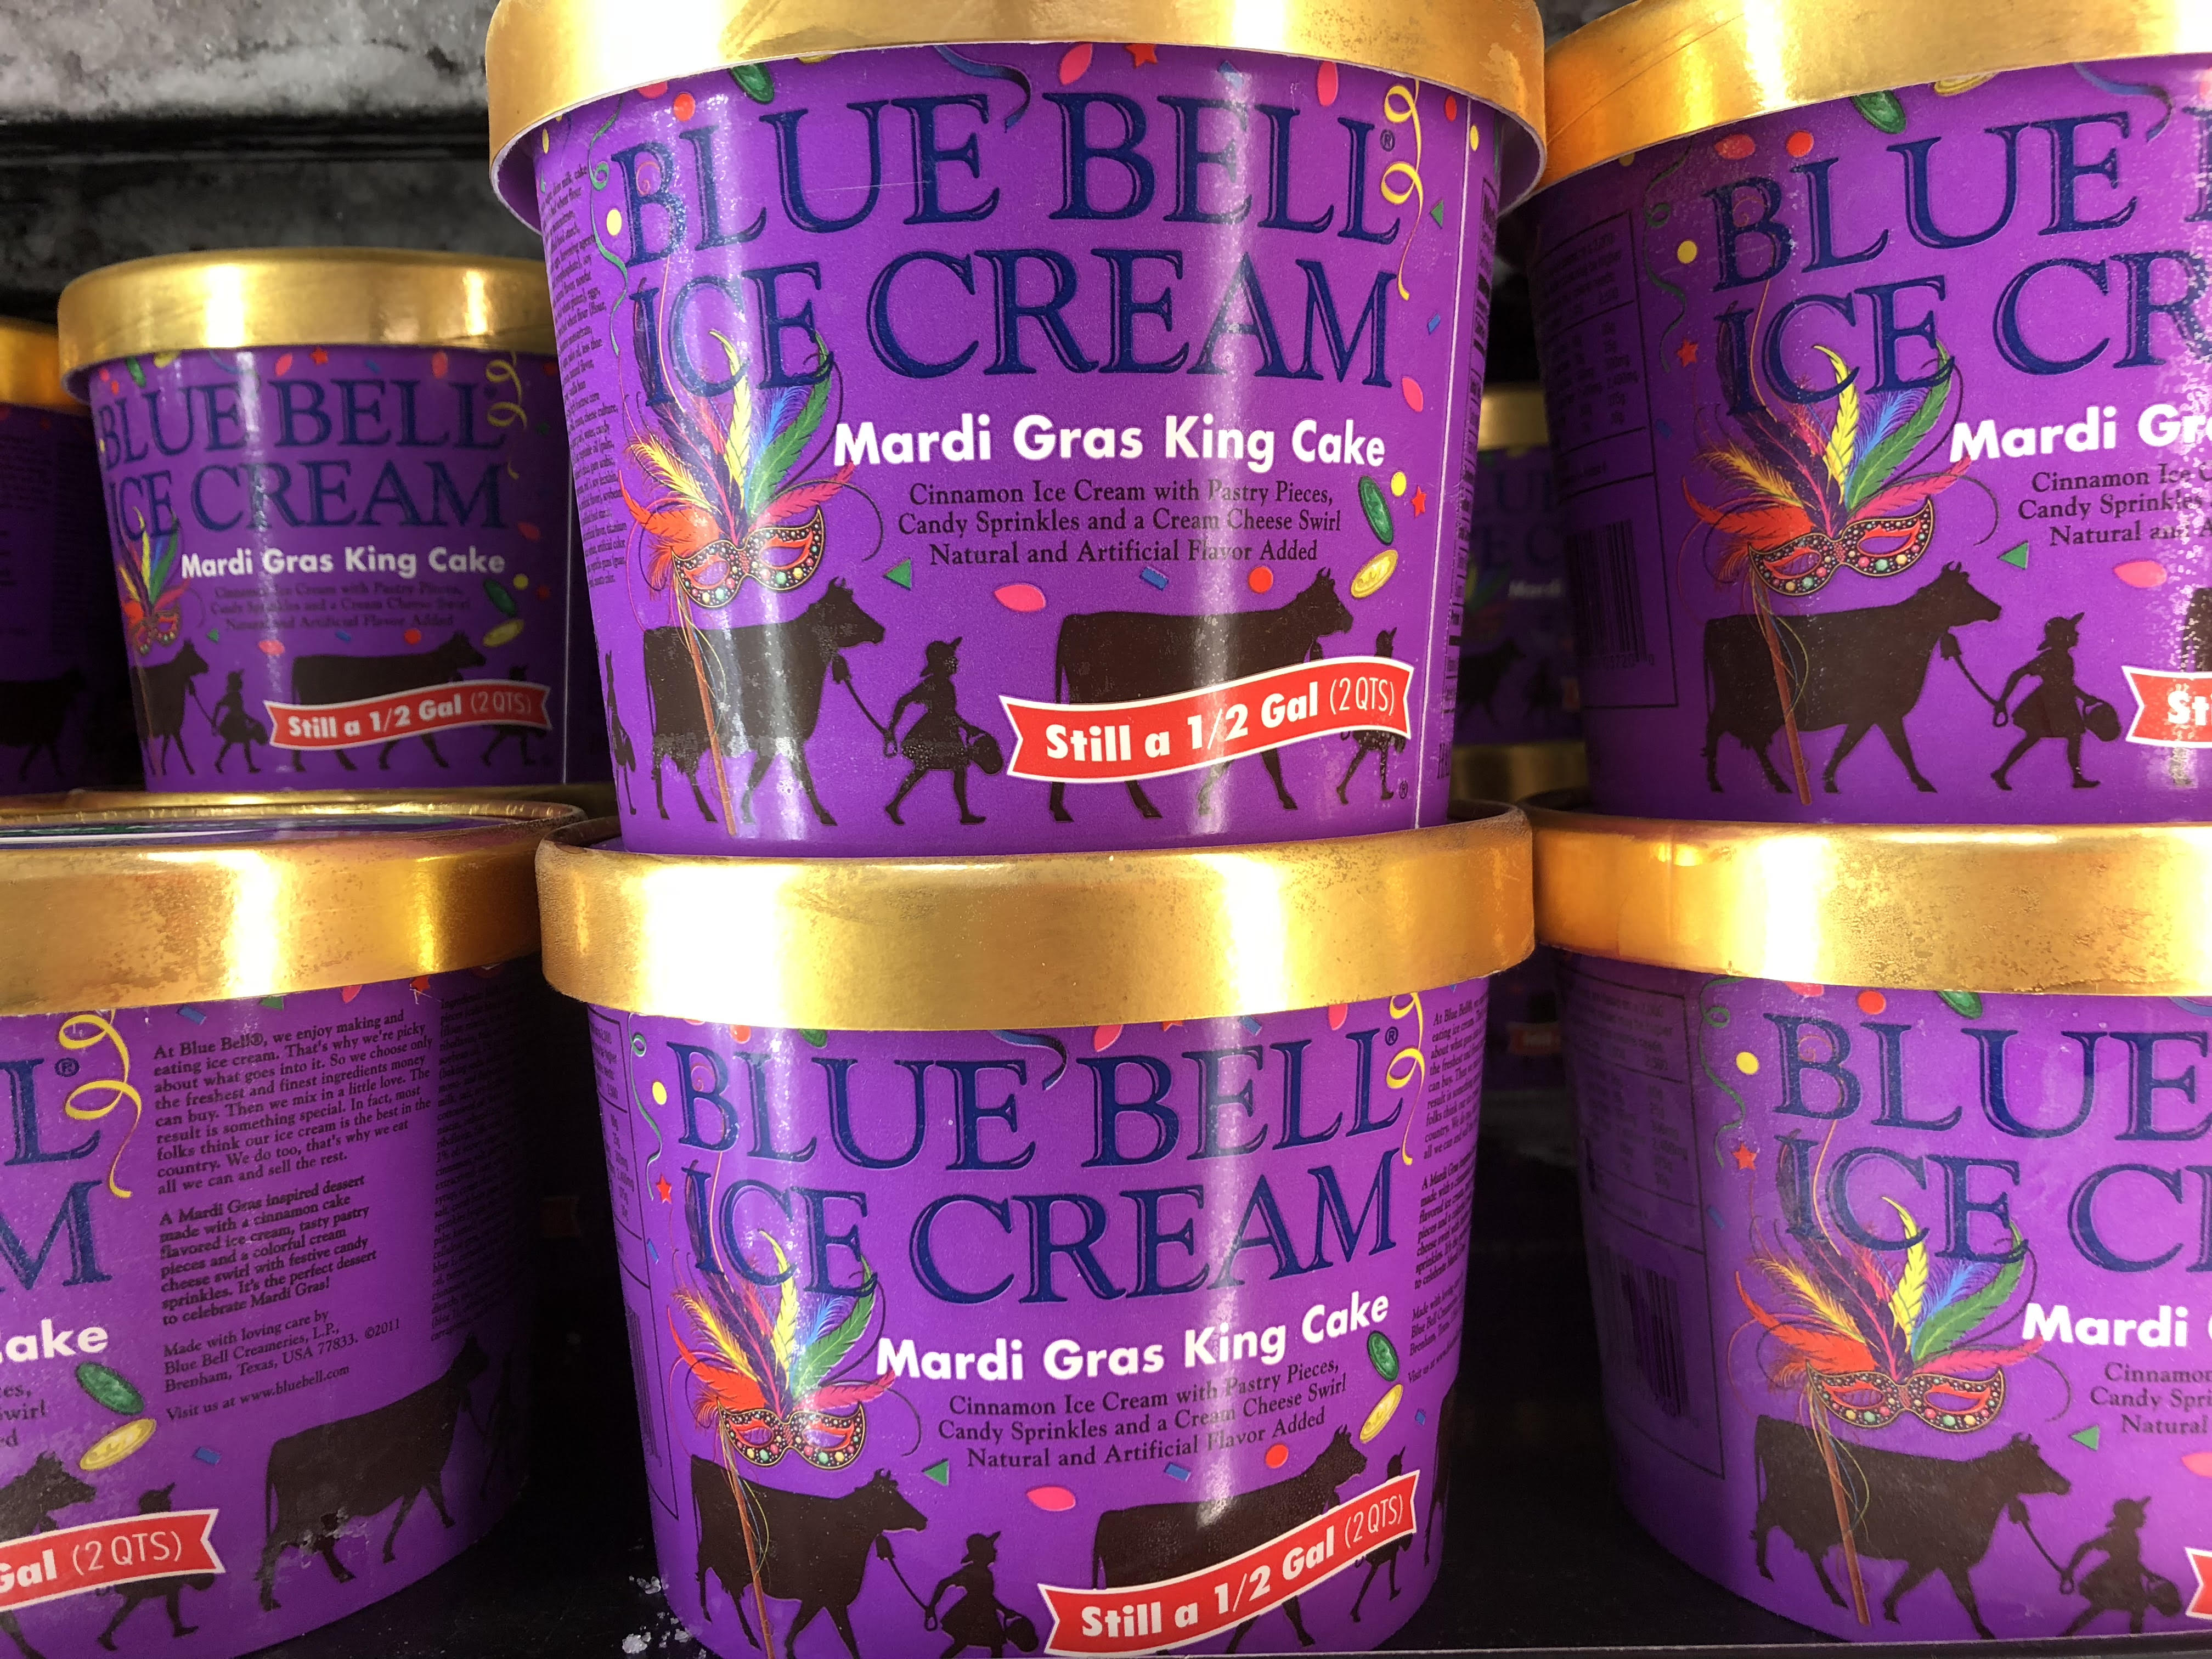 Here S Where You Can Get That Mardi Gras King Cake Ice Cream From